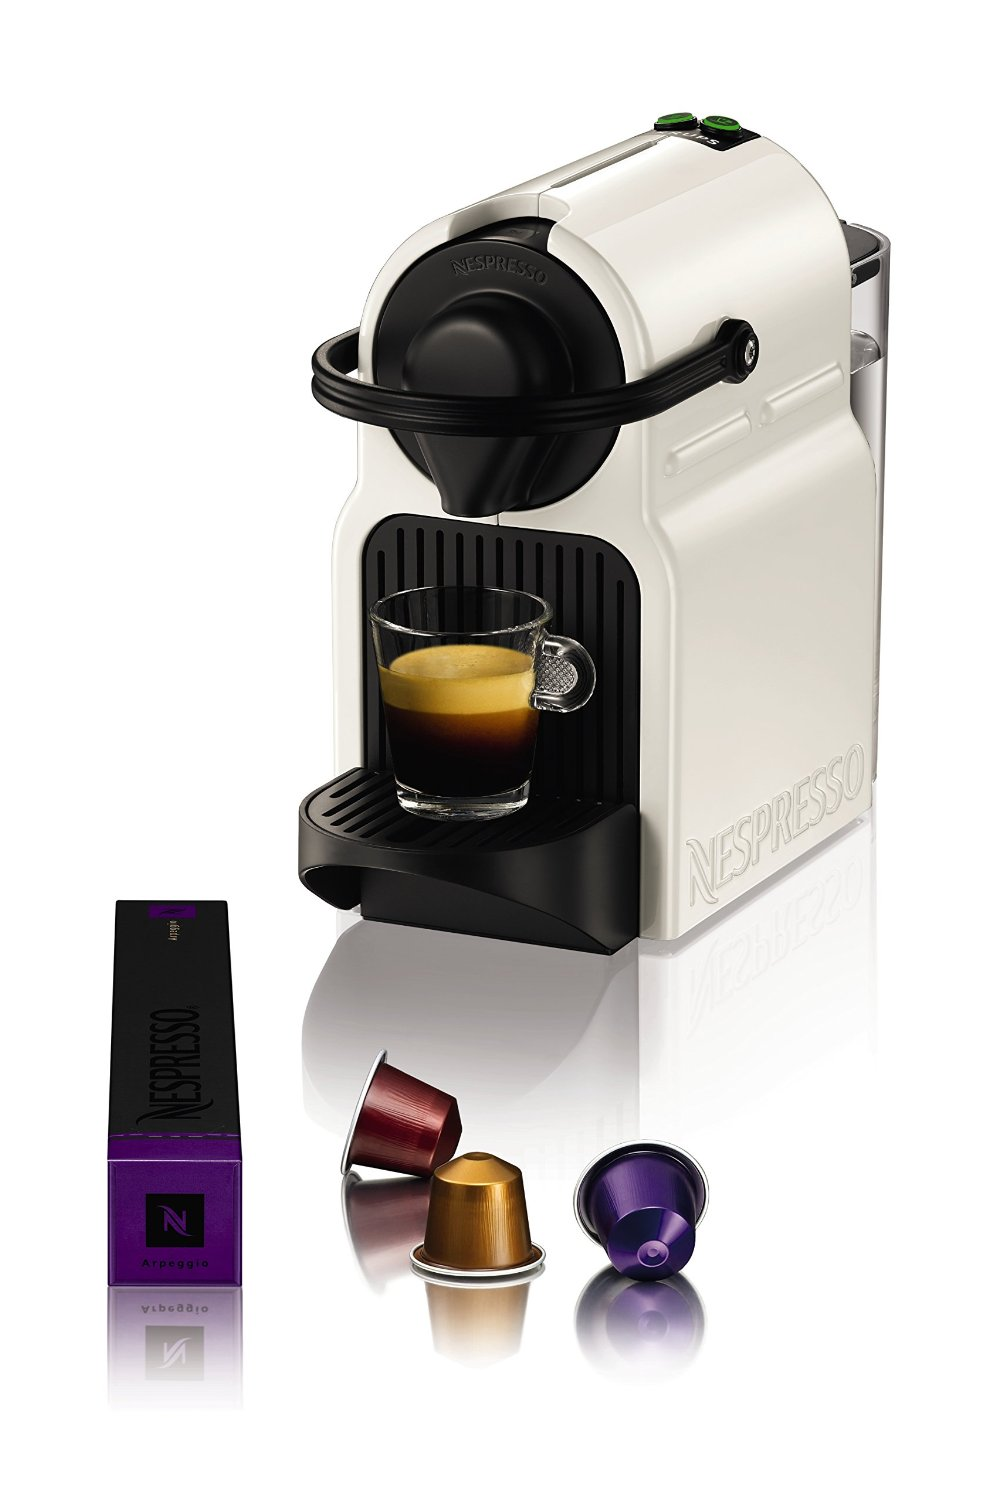 krups nespresso xn1001 inissia kaffeekapselmaschine in. Black Bedroom Furniture Sets. Home Design Ideas